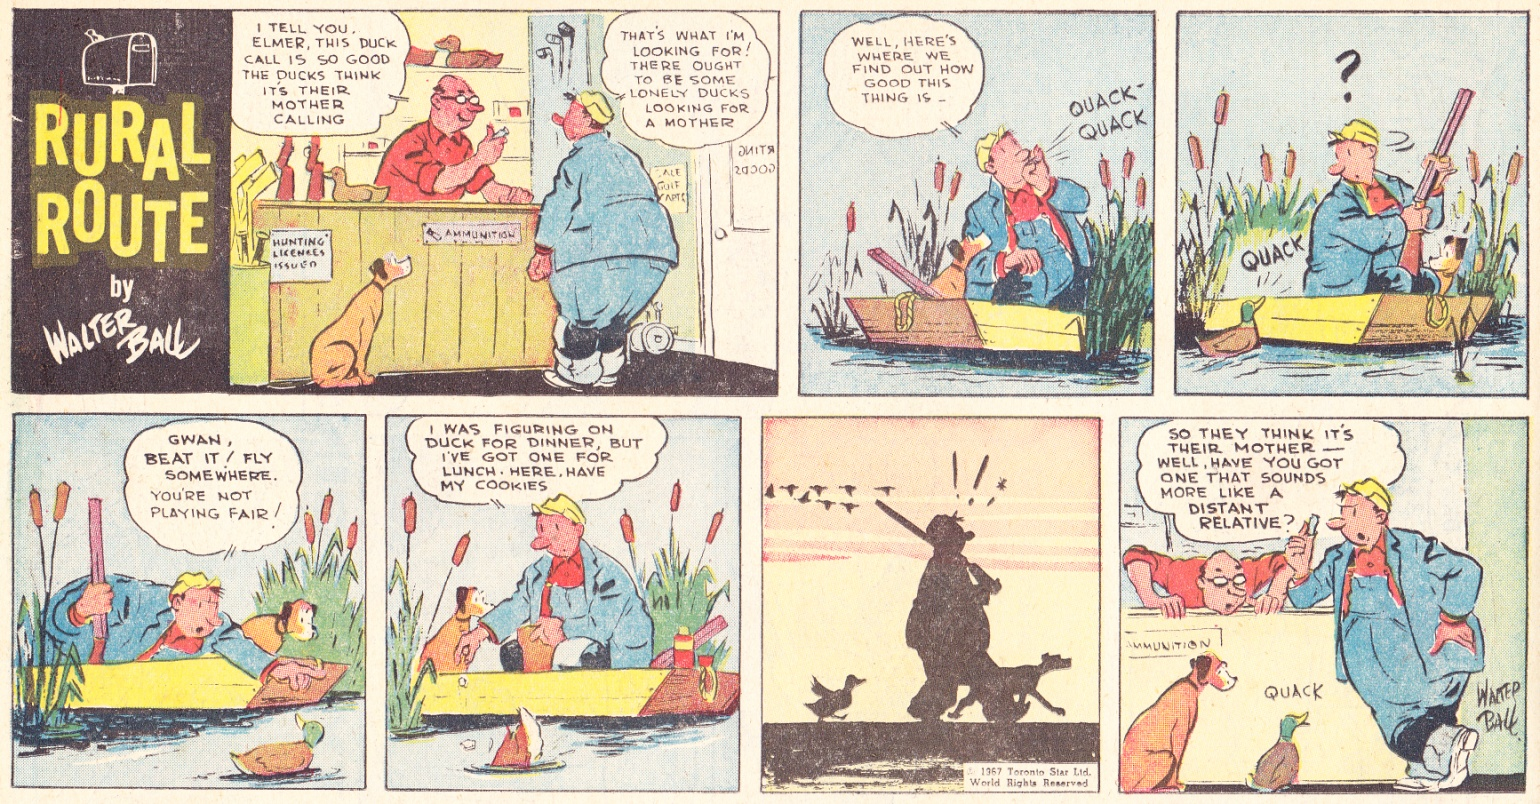 C:\Users\Robert\Documents\CARTOONING ILLUSTRATION ANIMATION\IMAGE CARTOON\IMAGE CARTOON R\RURAL ROUTE, S.W. Comics, 7 Oct 1967.jpg